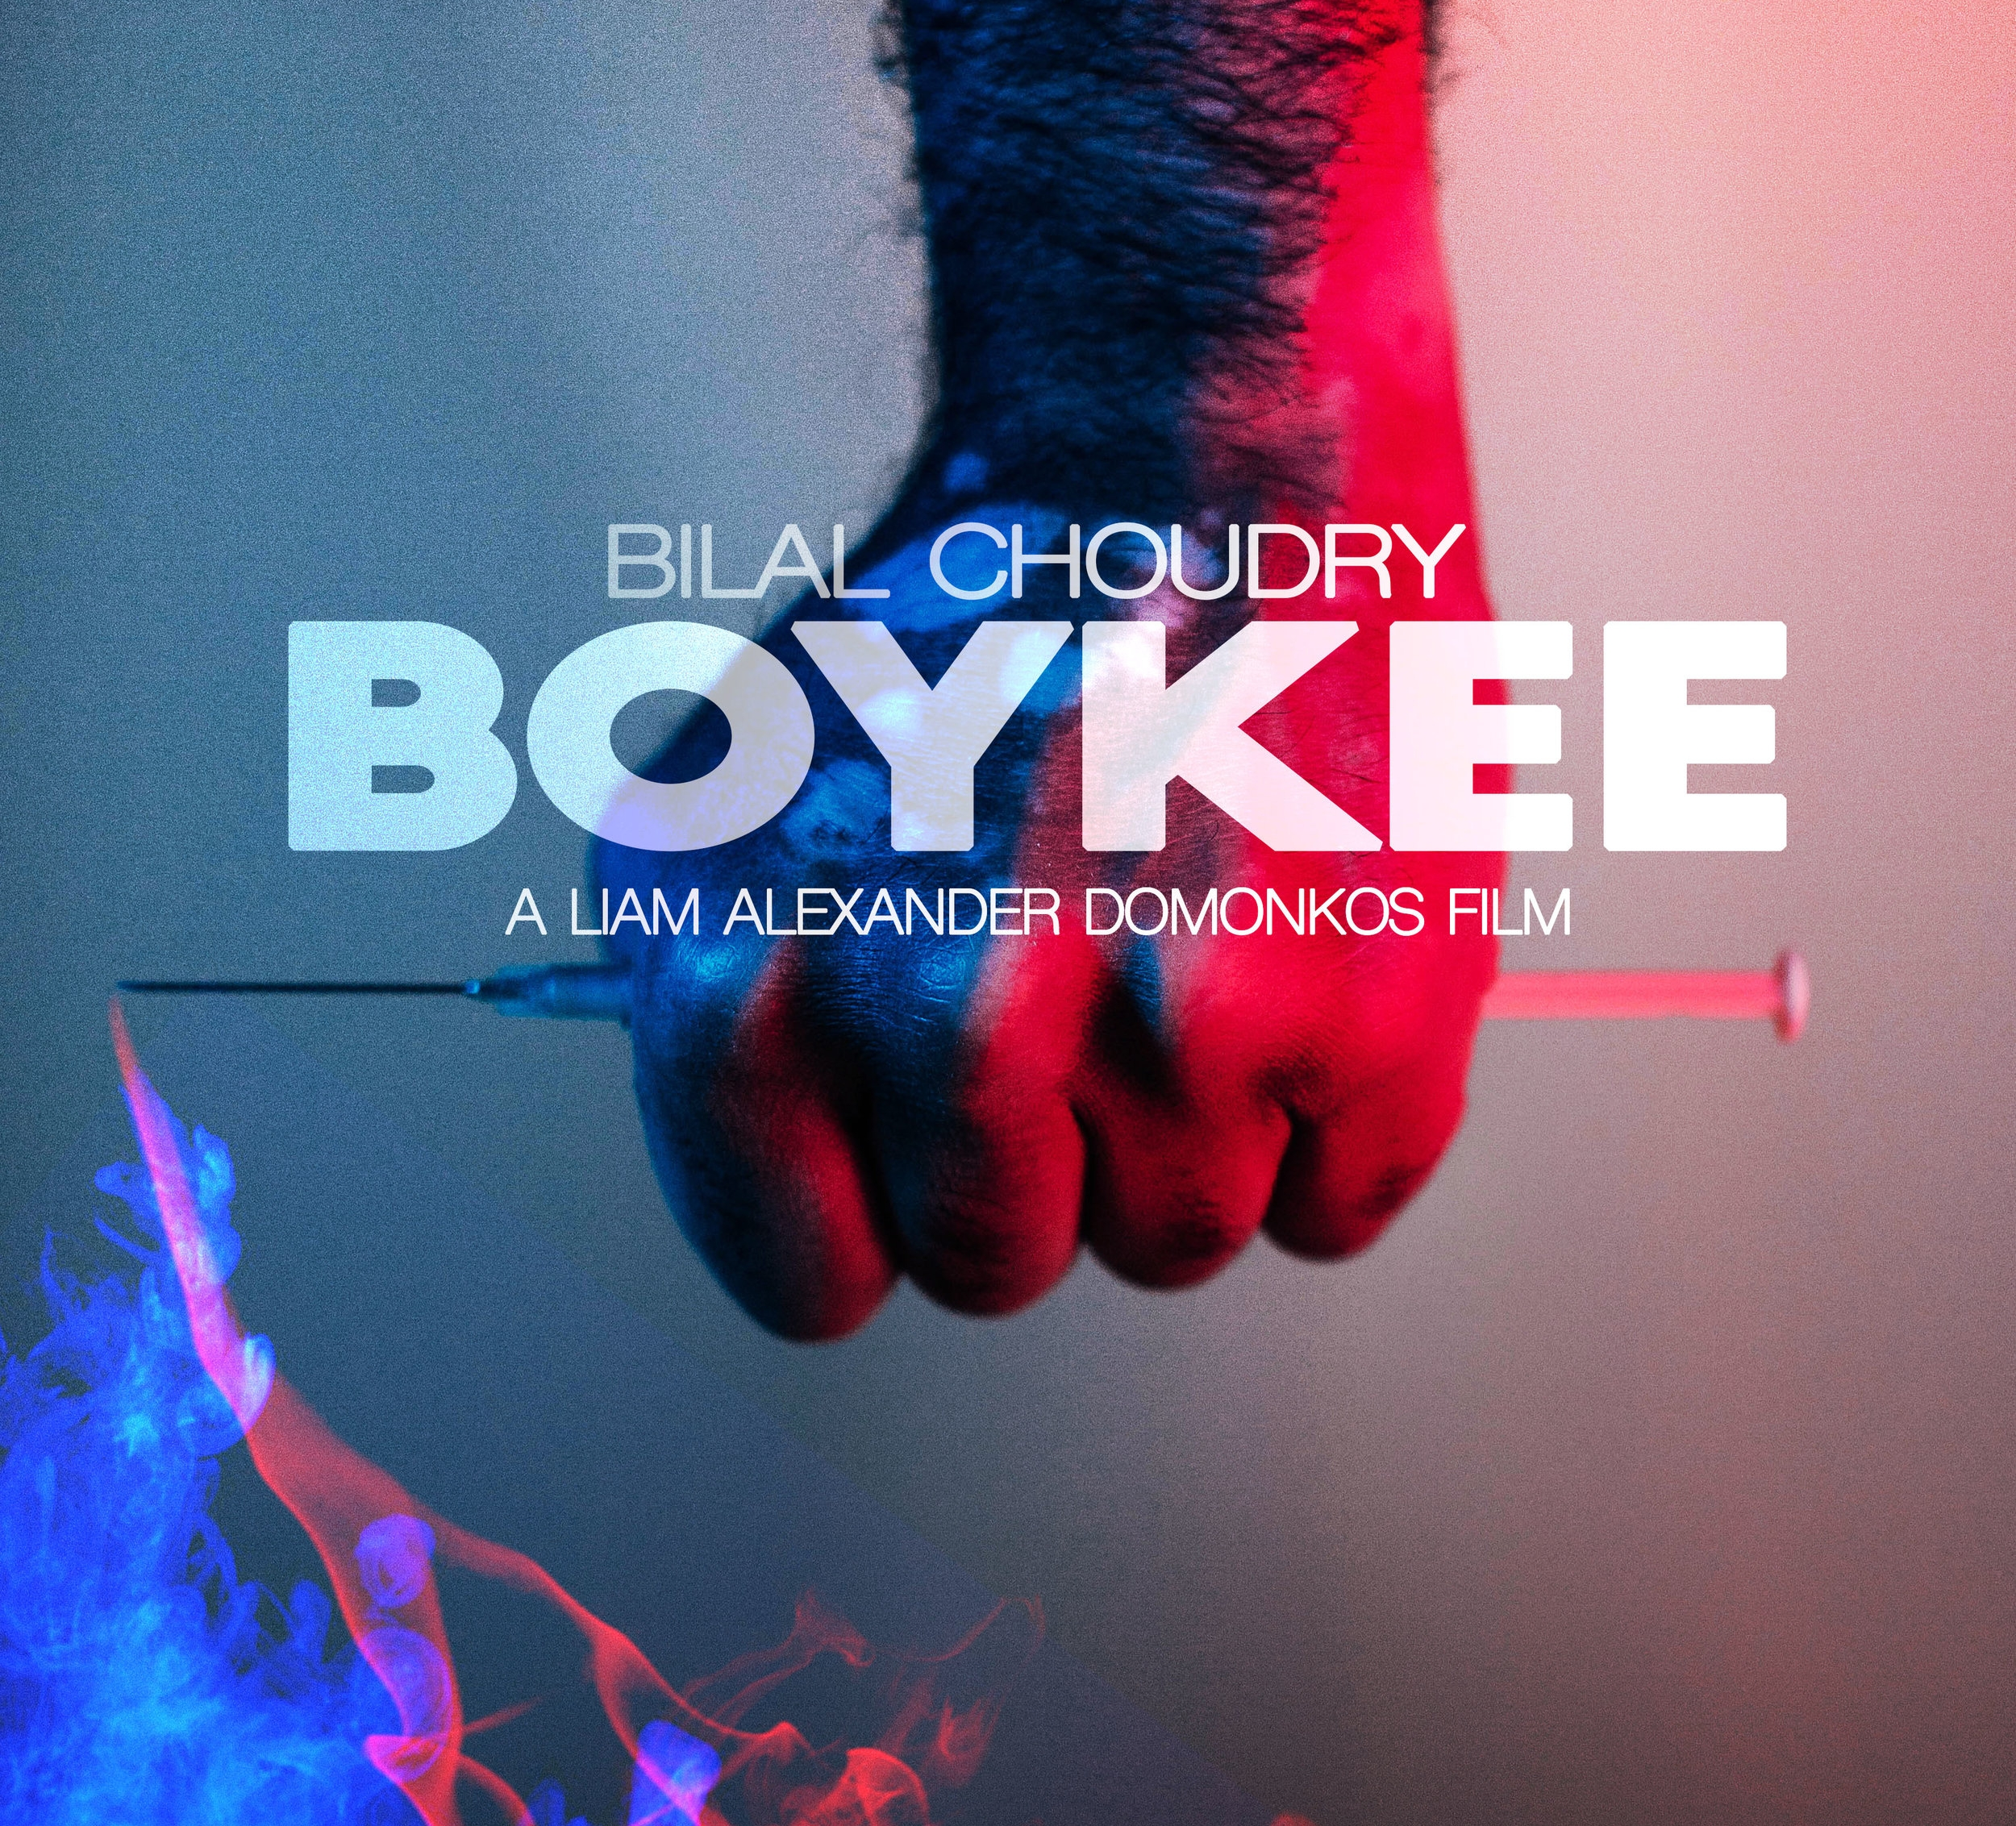 BOYKEE - 'Boykee' is Liam Alexander Domonkos' and Kinima's first full feature production, it is currently in it's final stages of post-production.